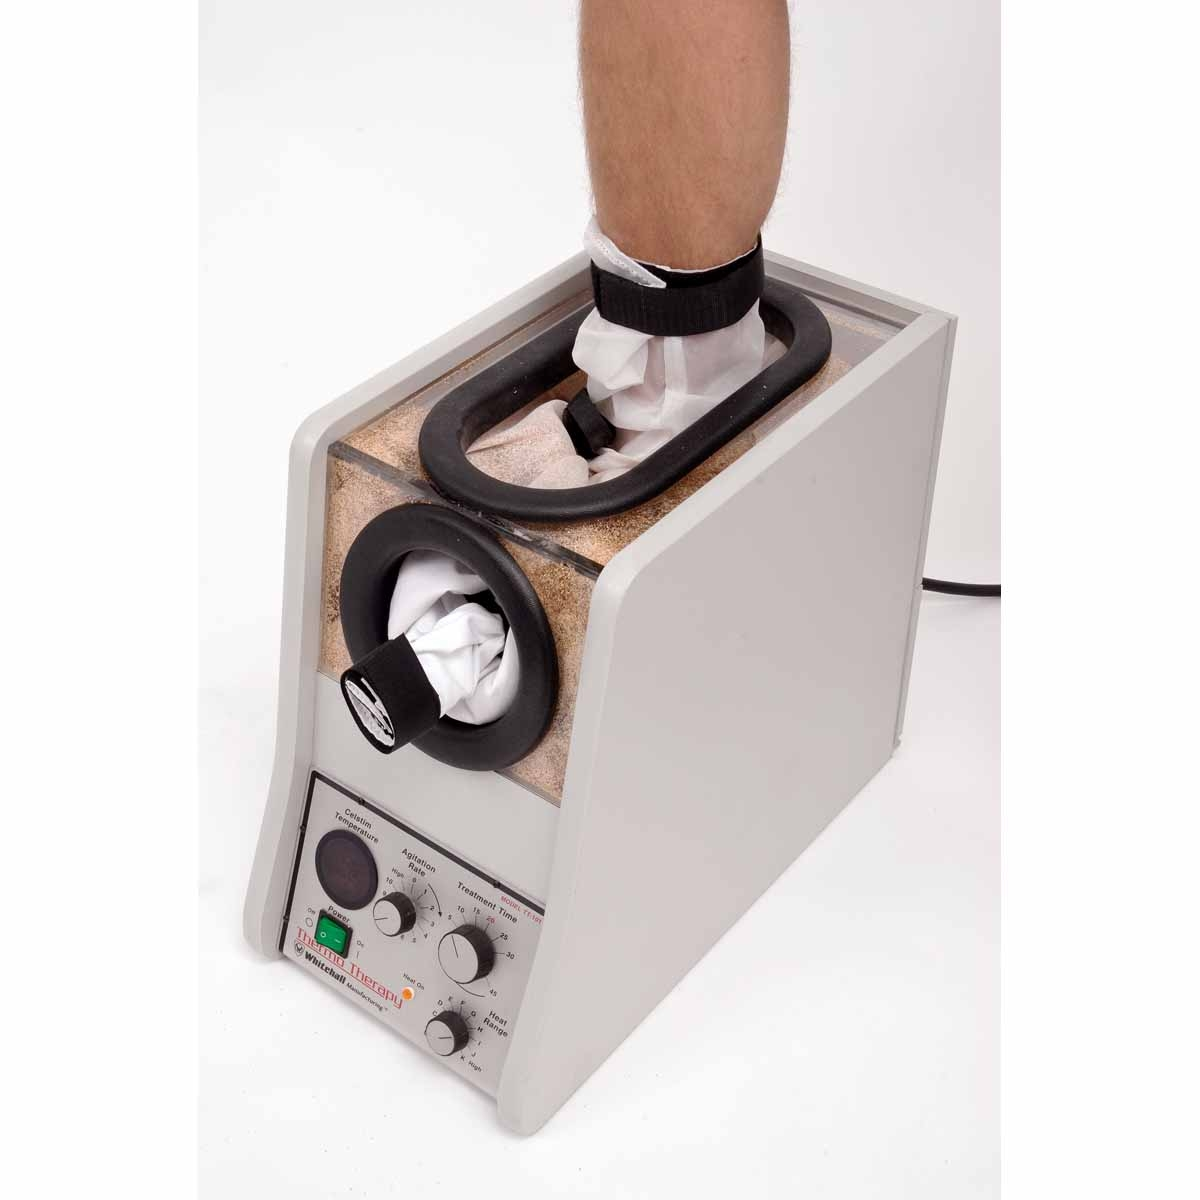 Whitehall 12 lb ThermoTherapy Unit